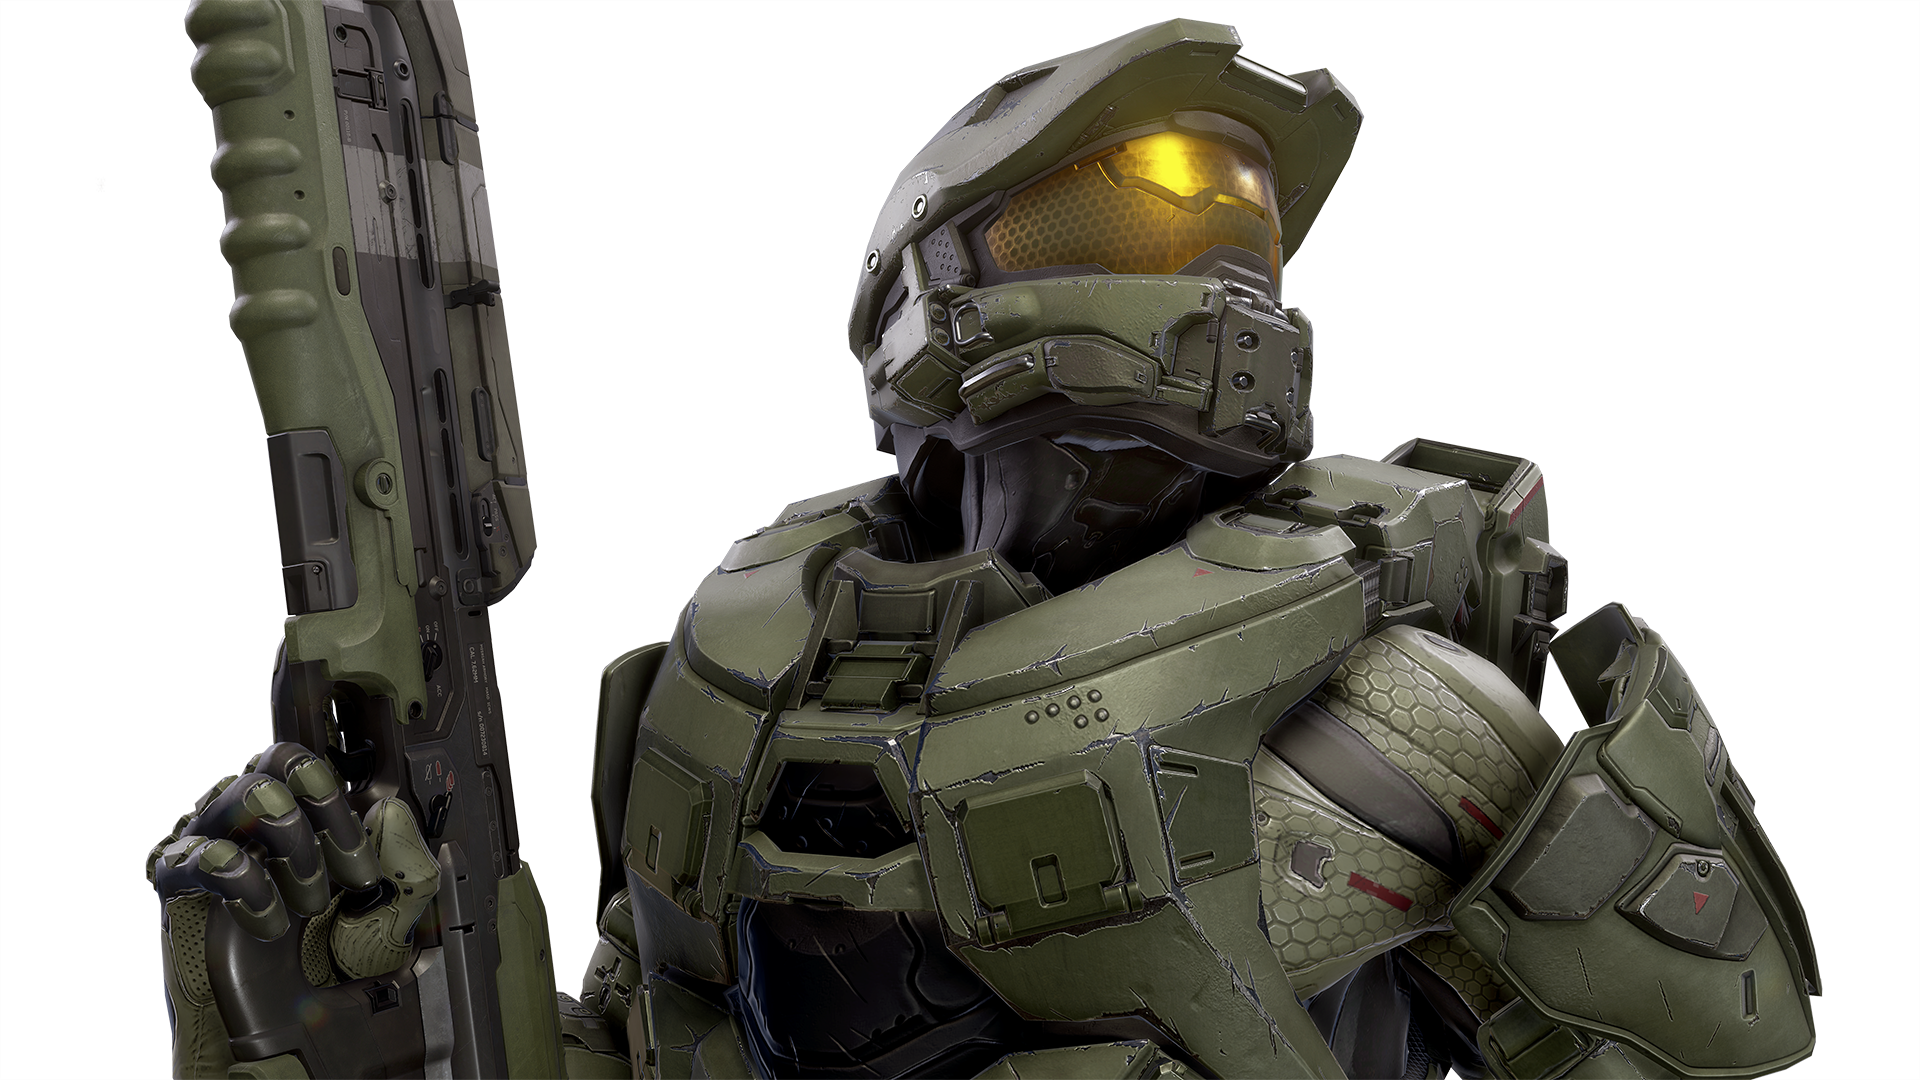 h5-guardians-render-master-chief-07.png